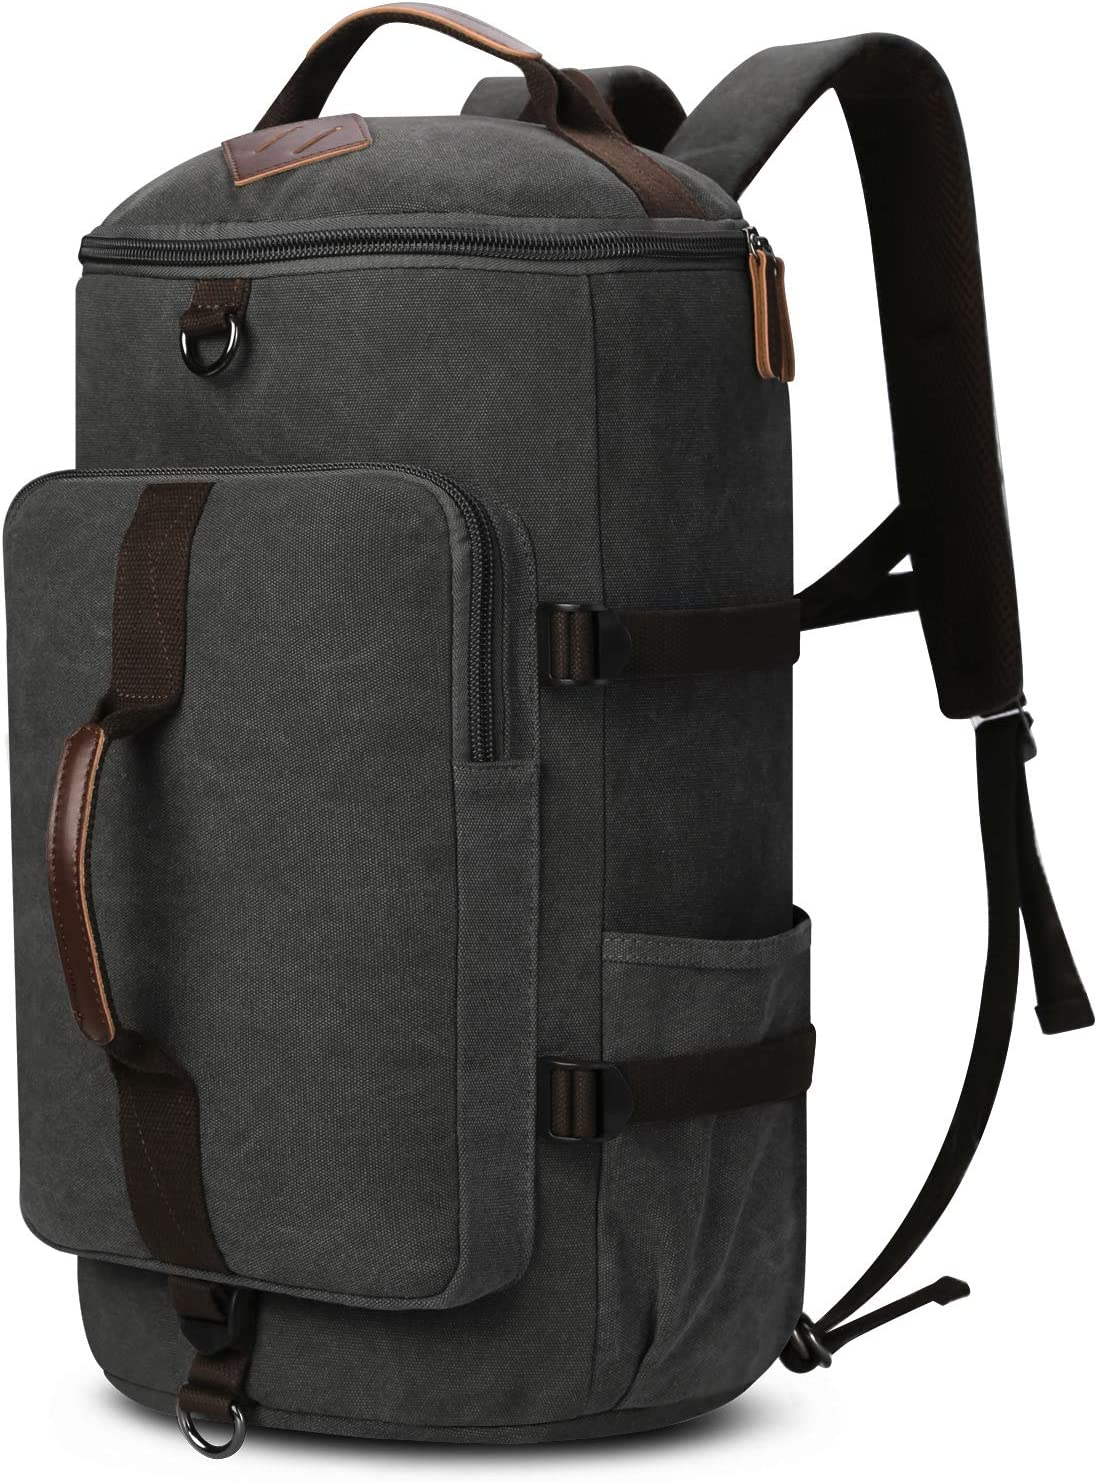 Best Backpack for Travel in Europe 2